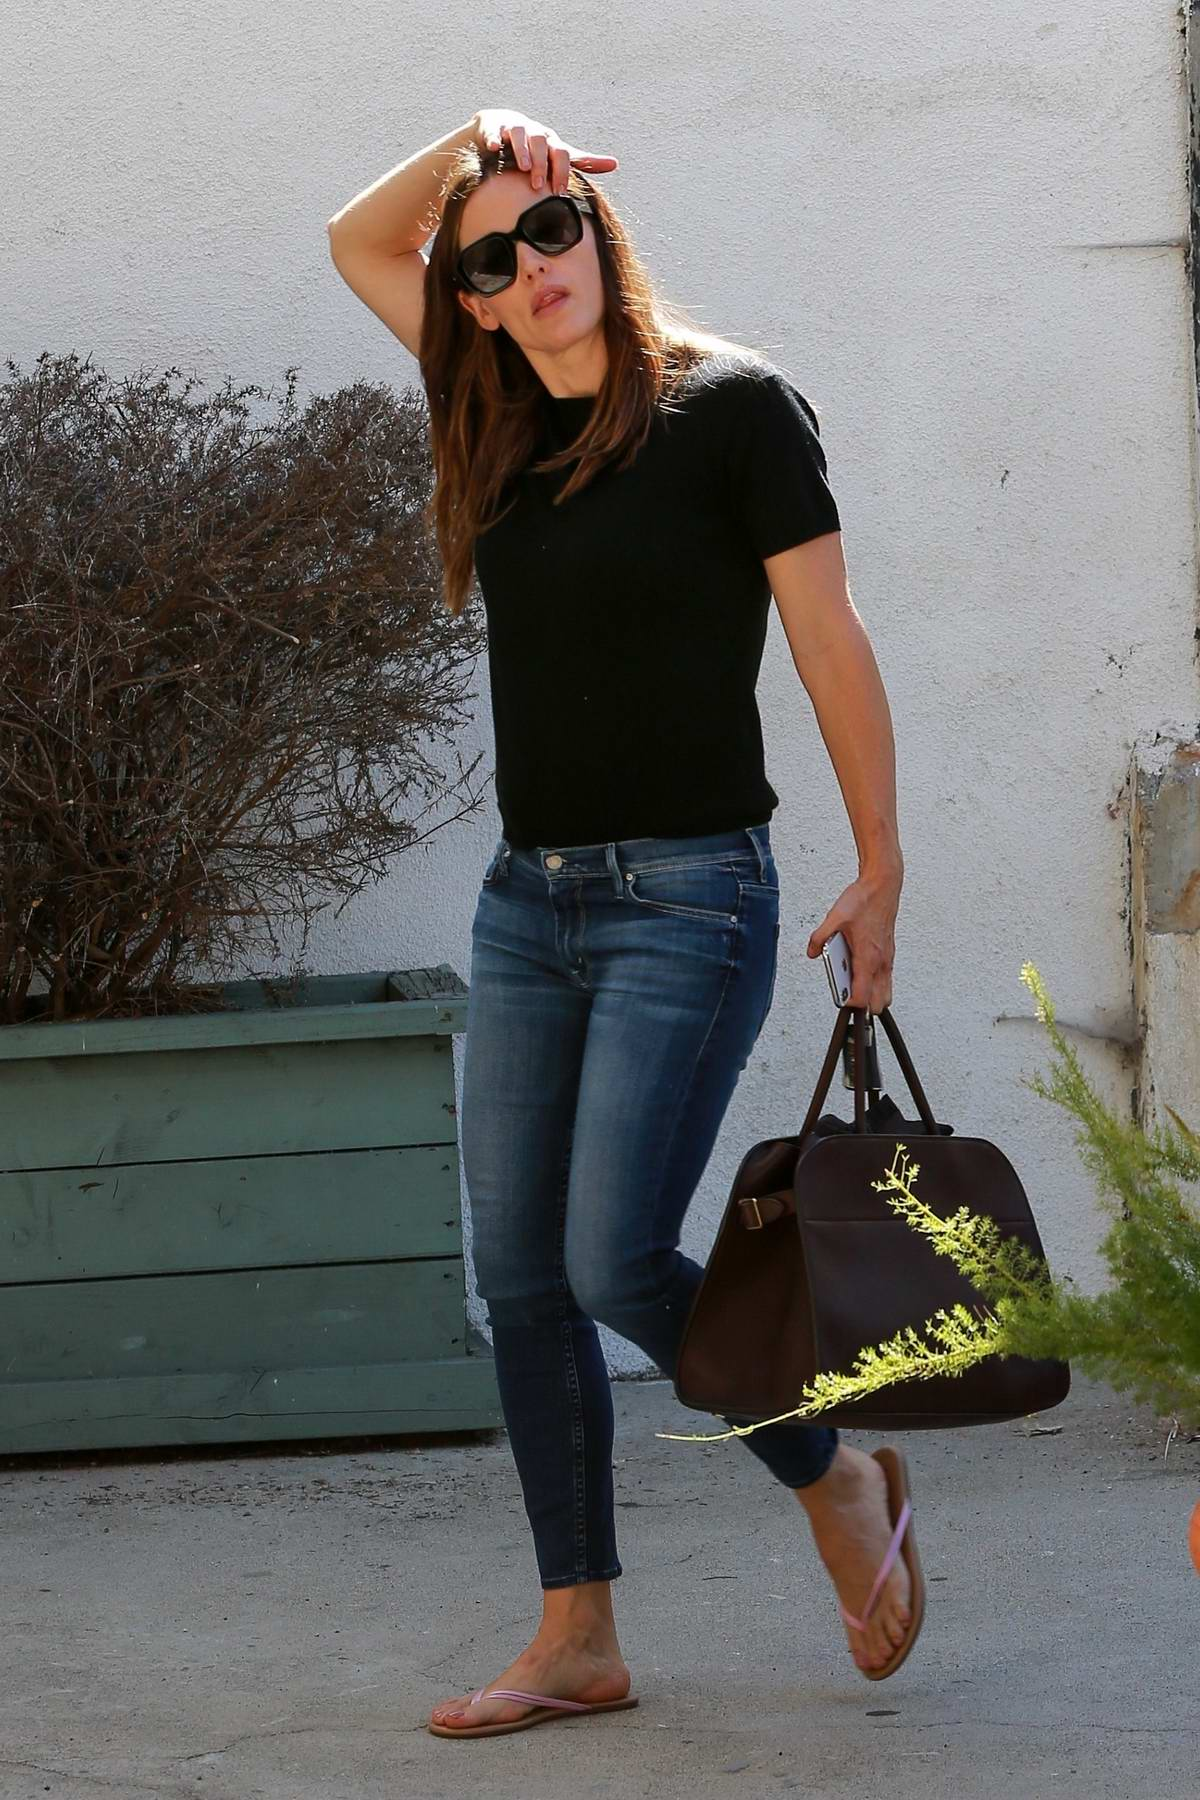 Jennifer Garner wears a black top and cropped jeans as run errands in Brentwood, Los Angeles